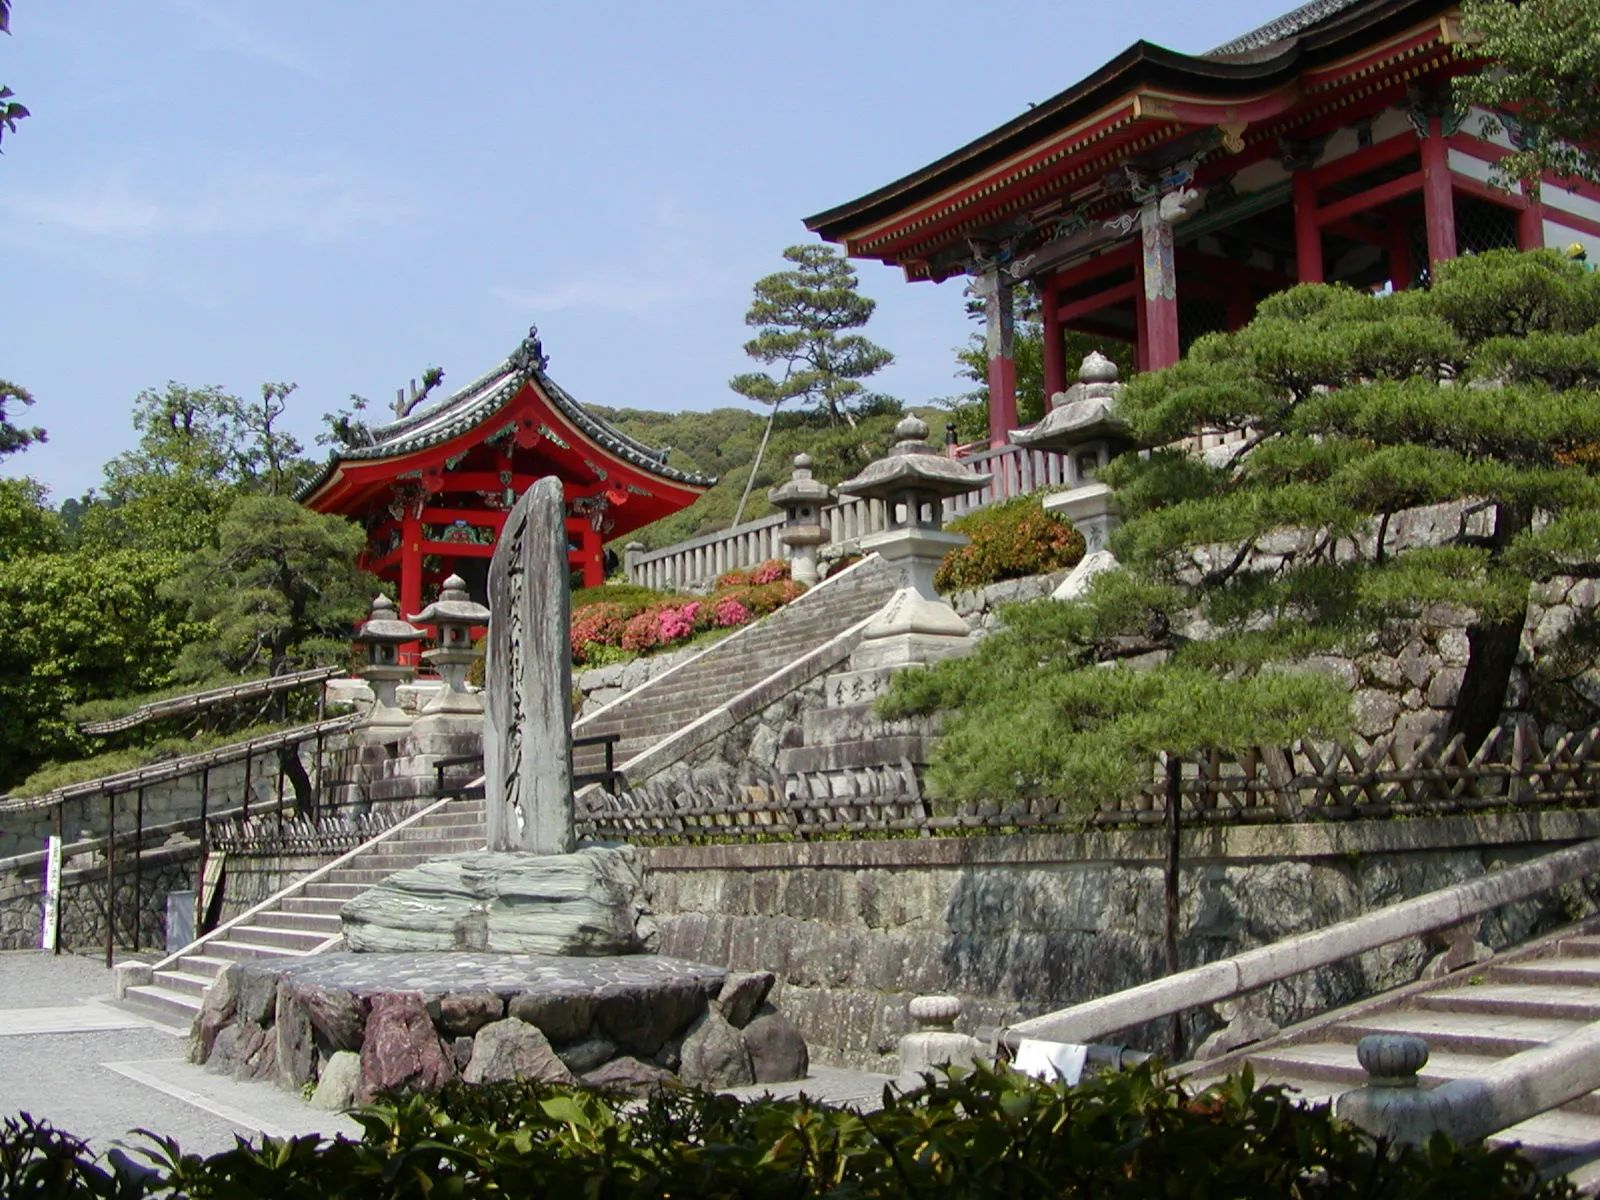 Photo of The West Gate of Kiyomizu-dera temple in Kyoto, Japan